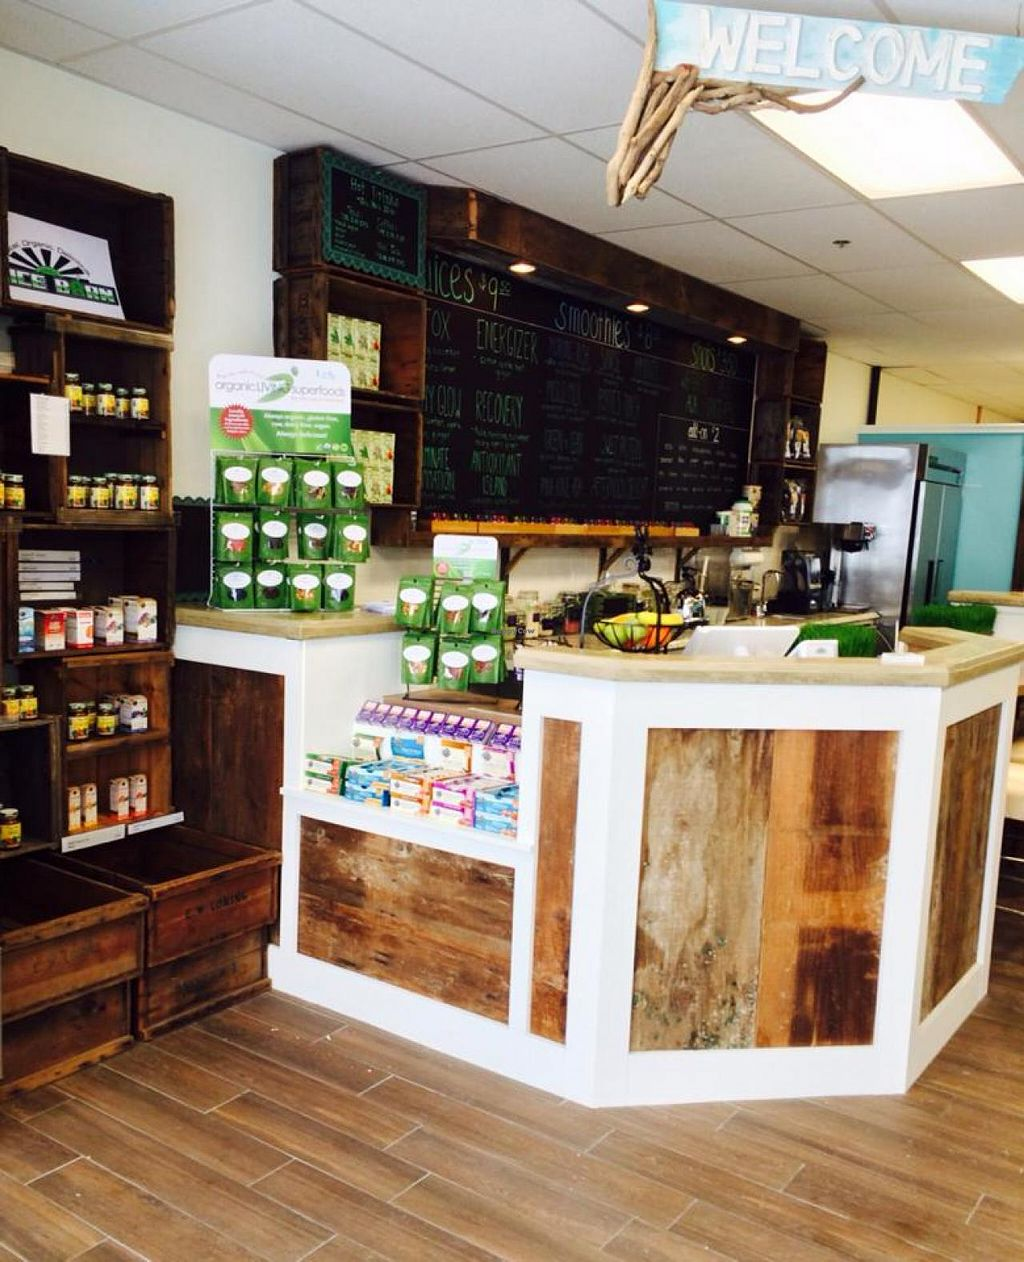 """Photo of The Juice Barn  by <a href=""""/members/profile/community"""">community</a> <br/>The Juice Barn <br/> February 22, 2015  - <a href='/contact/abuse/image/55876/93730'>Report</a>"""